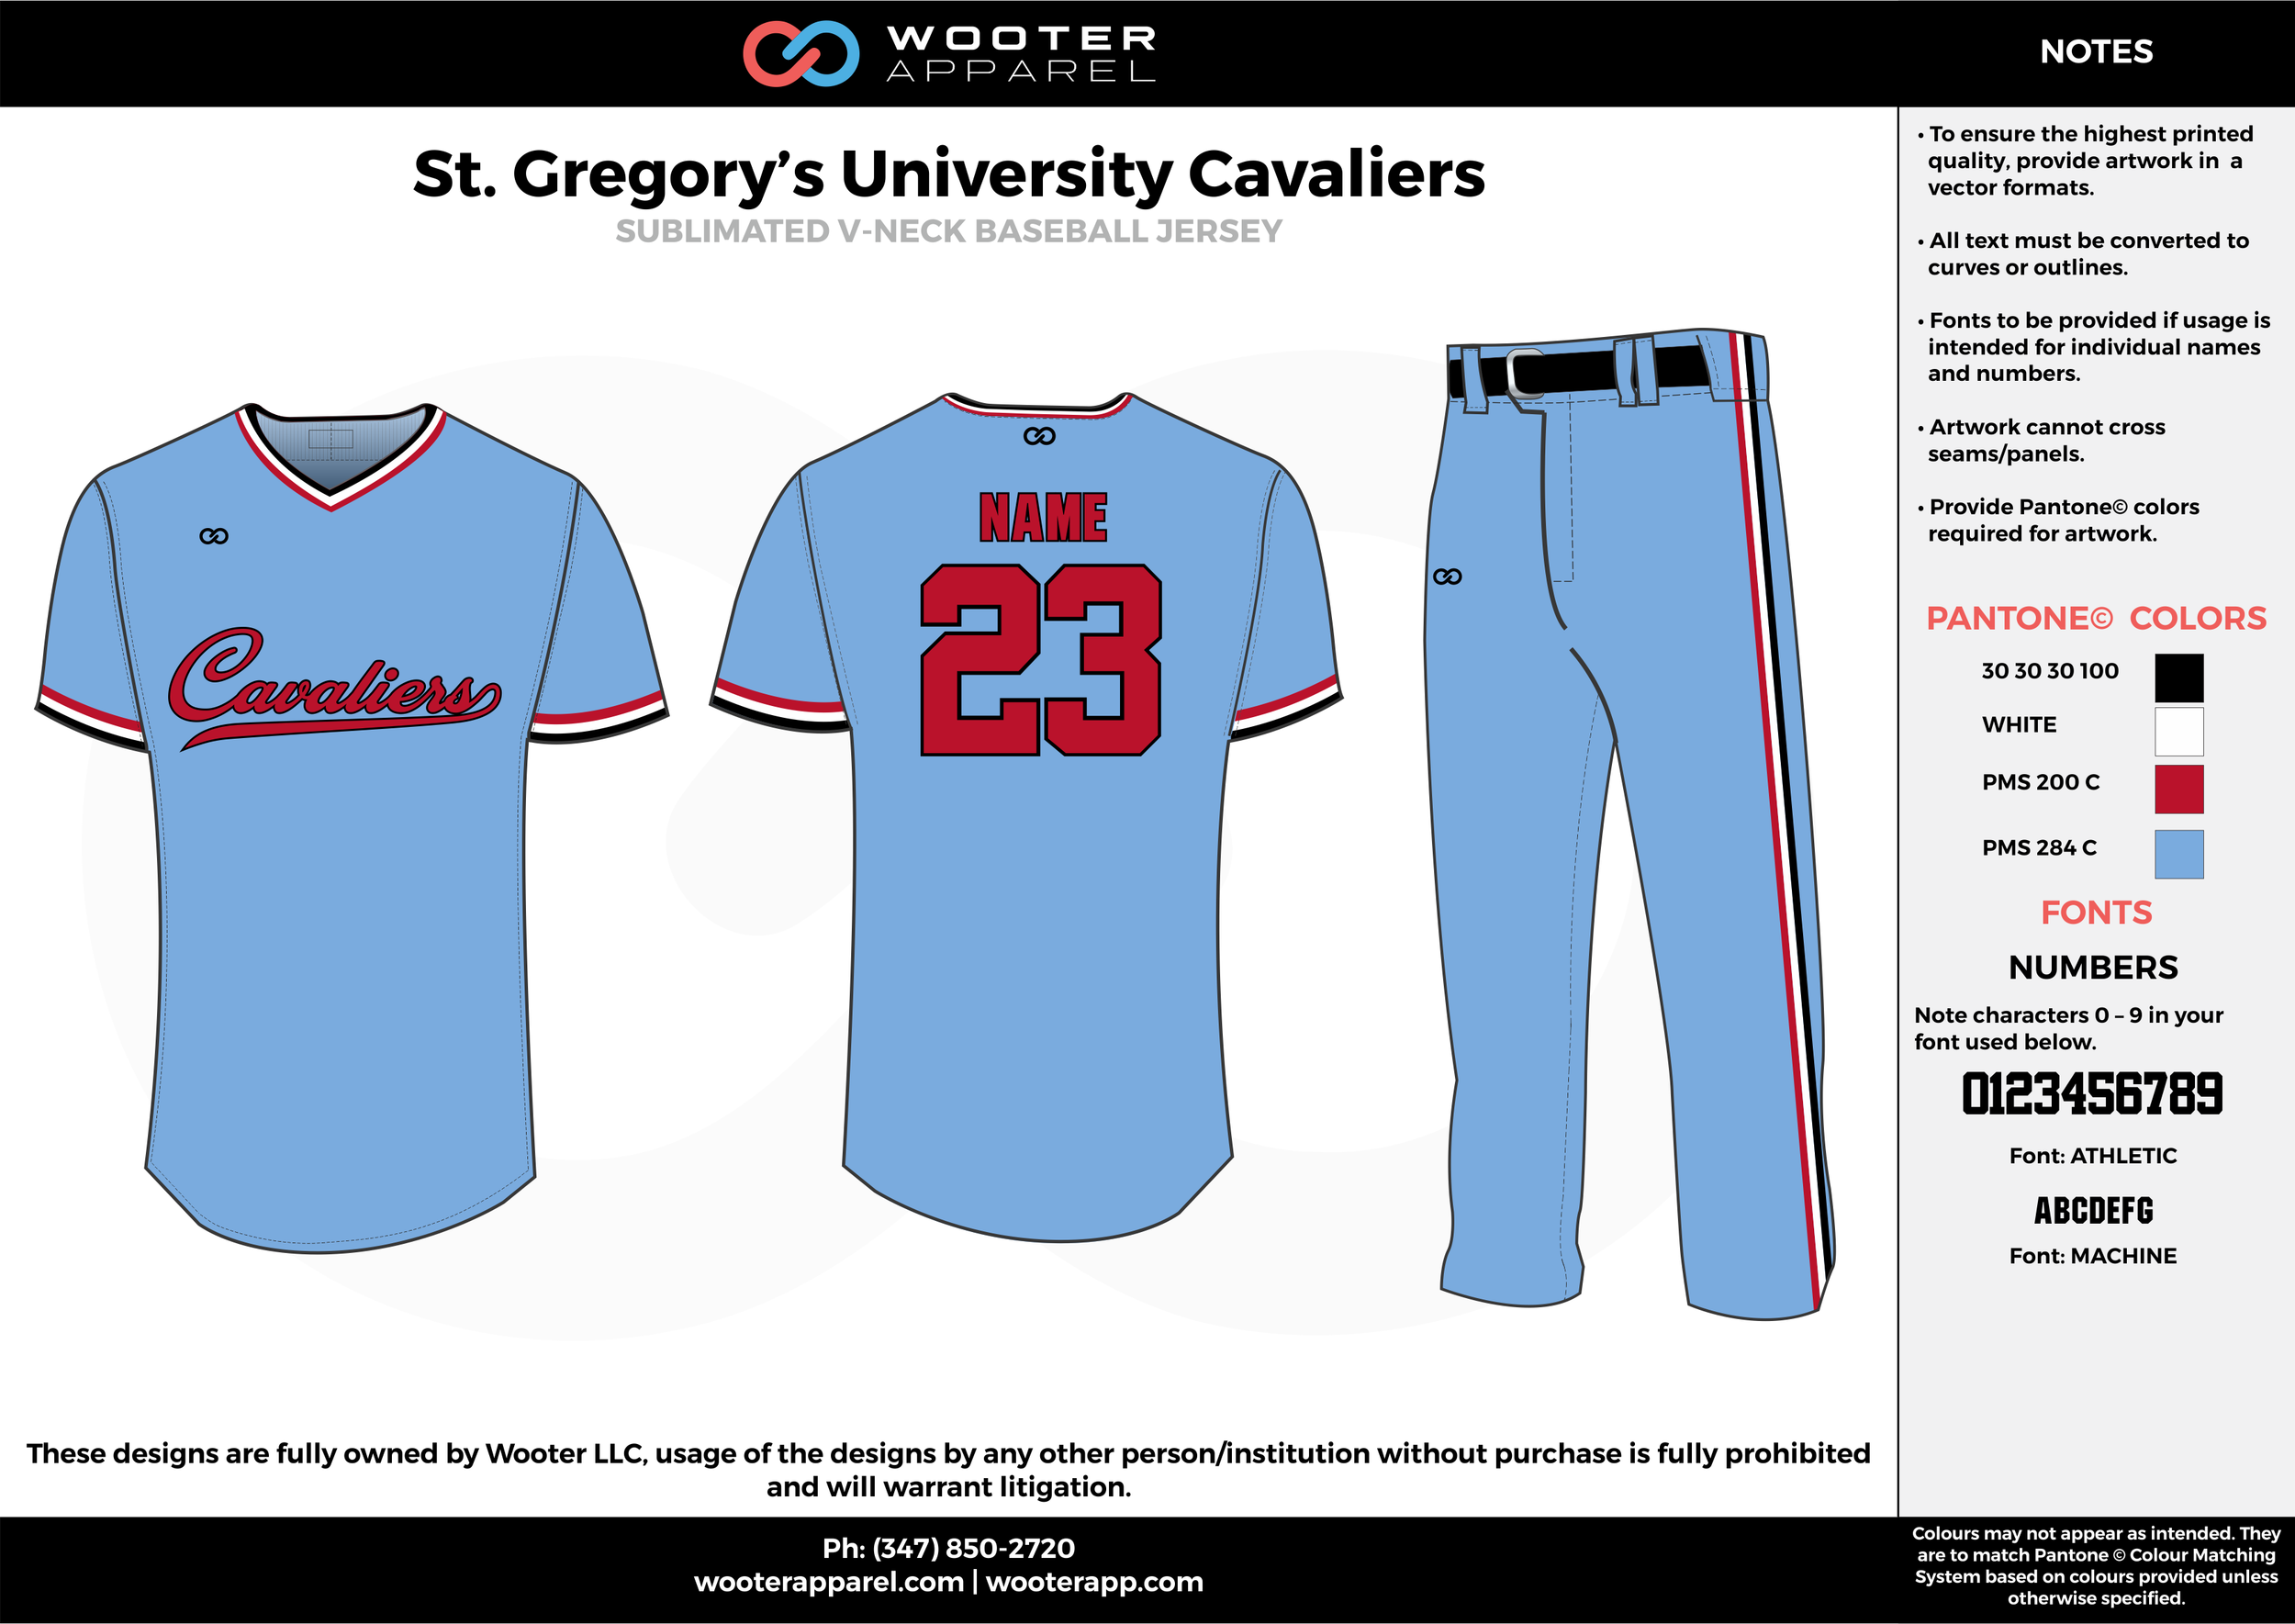 ST. GREGORY'S UNIVERSITY CAVELLERS white blue red black baseball uniforms jerseys pants